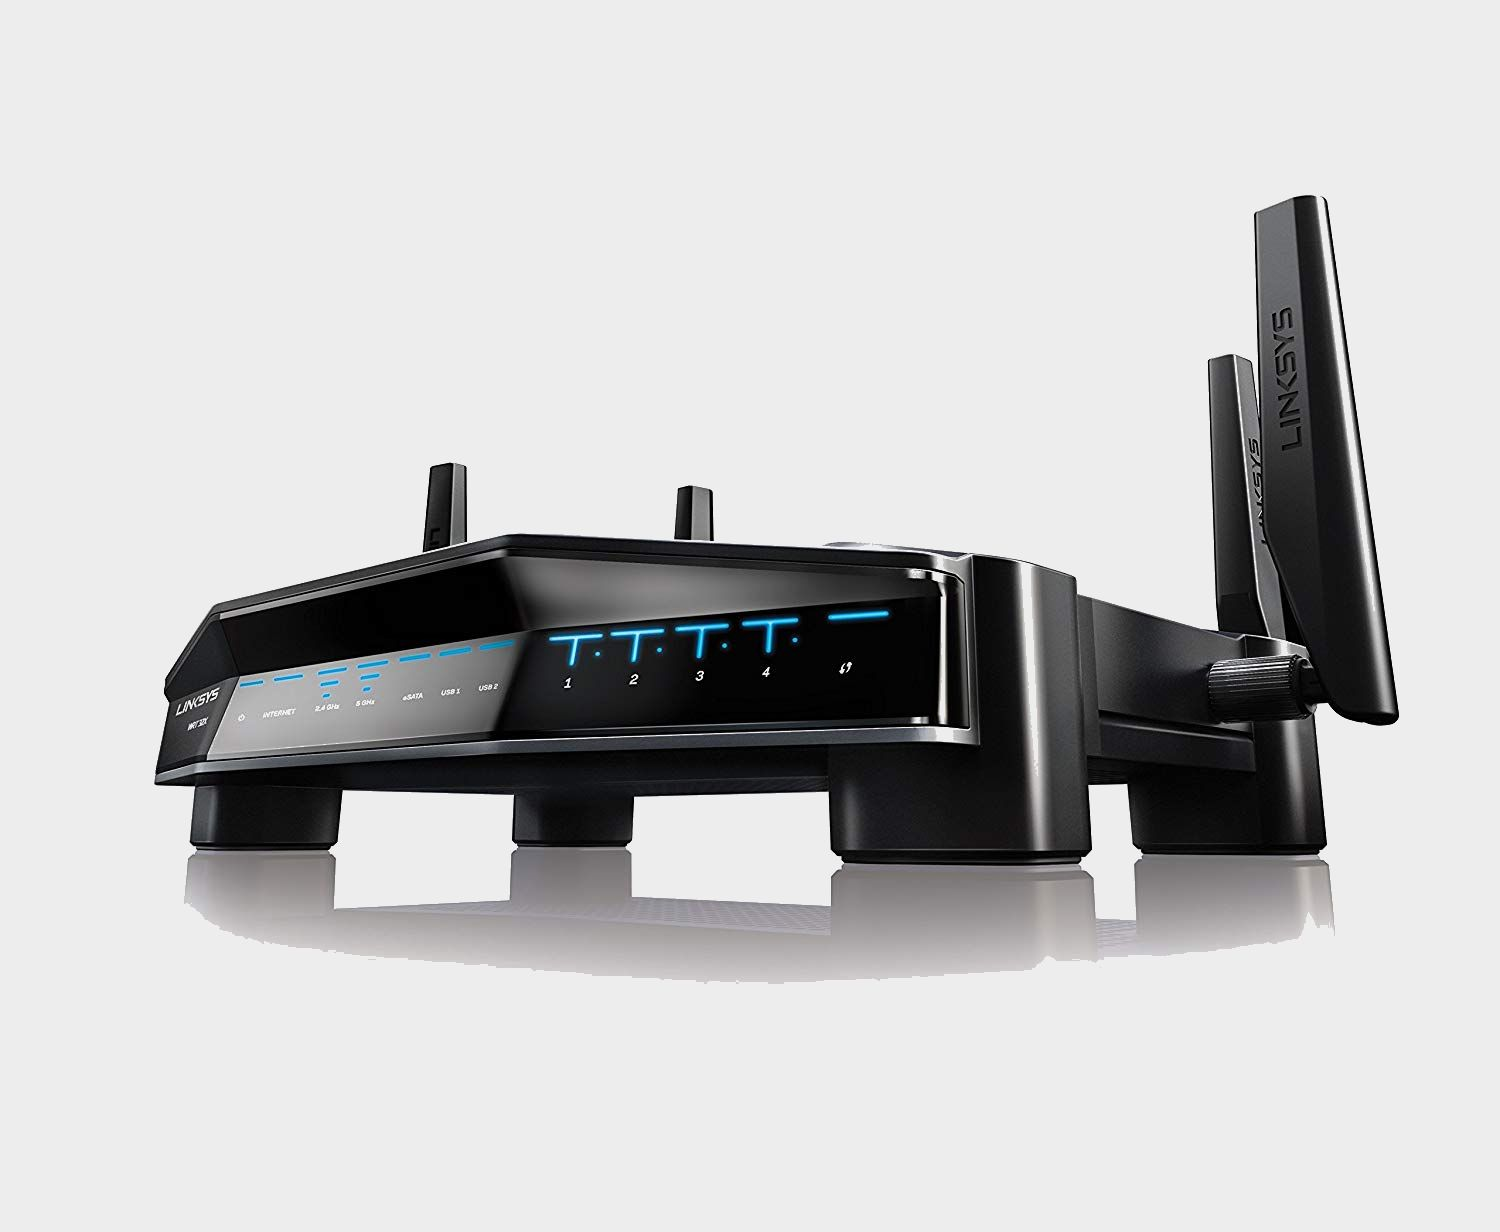 How to login to your router, change settings, and update firmware